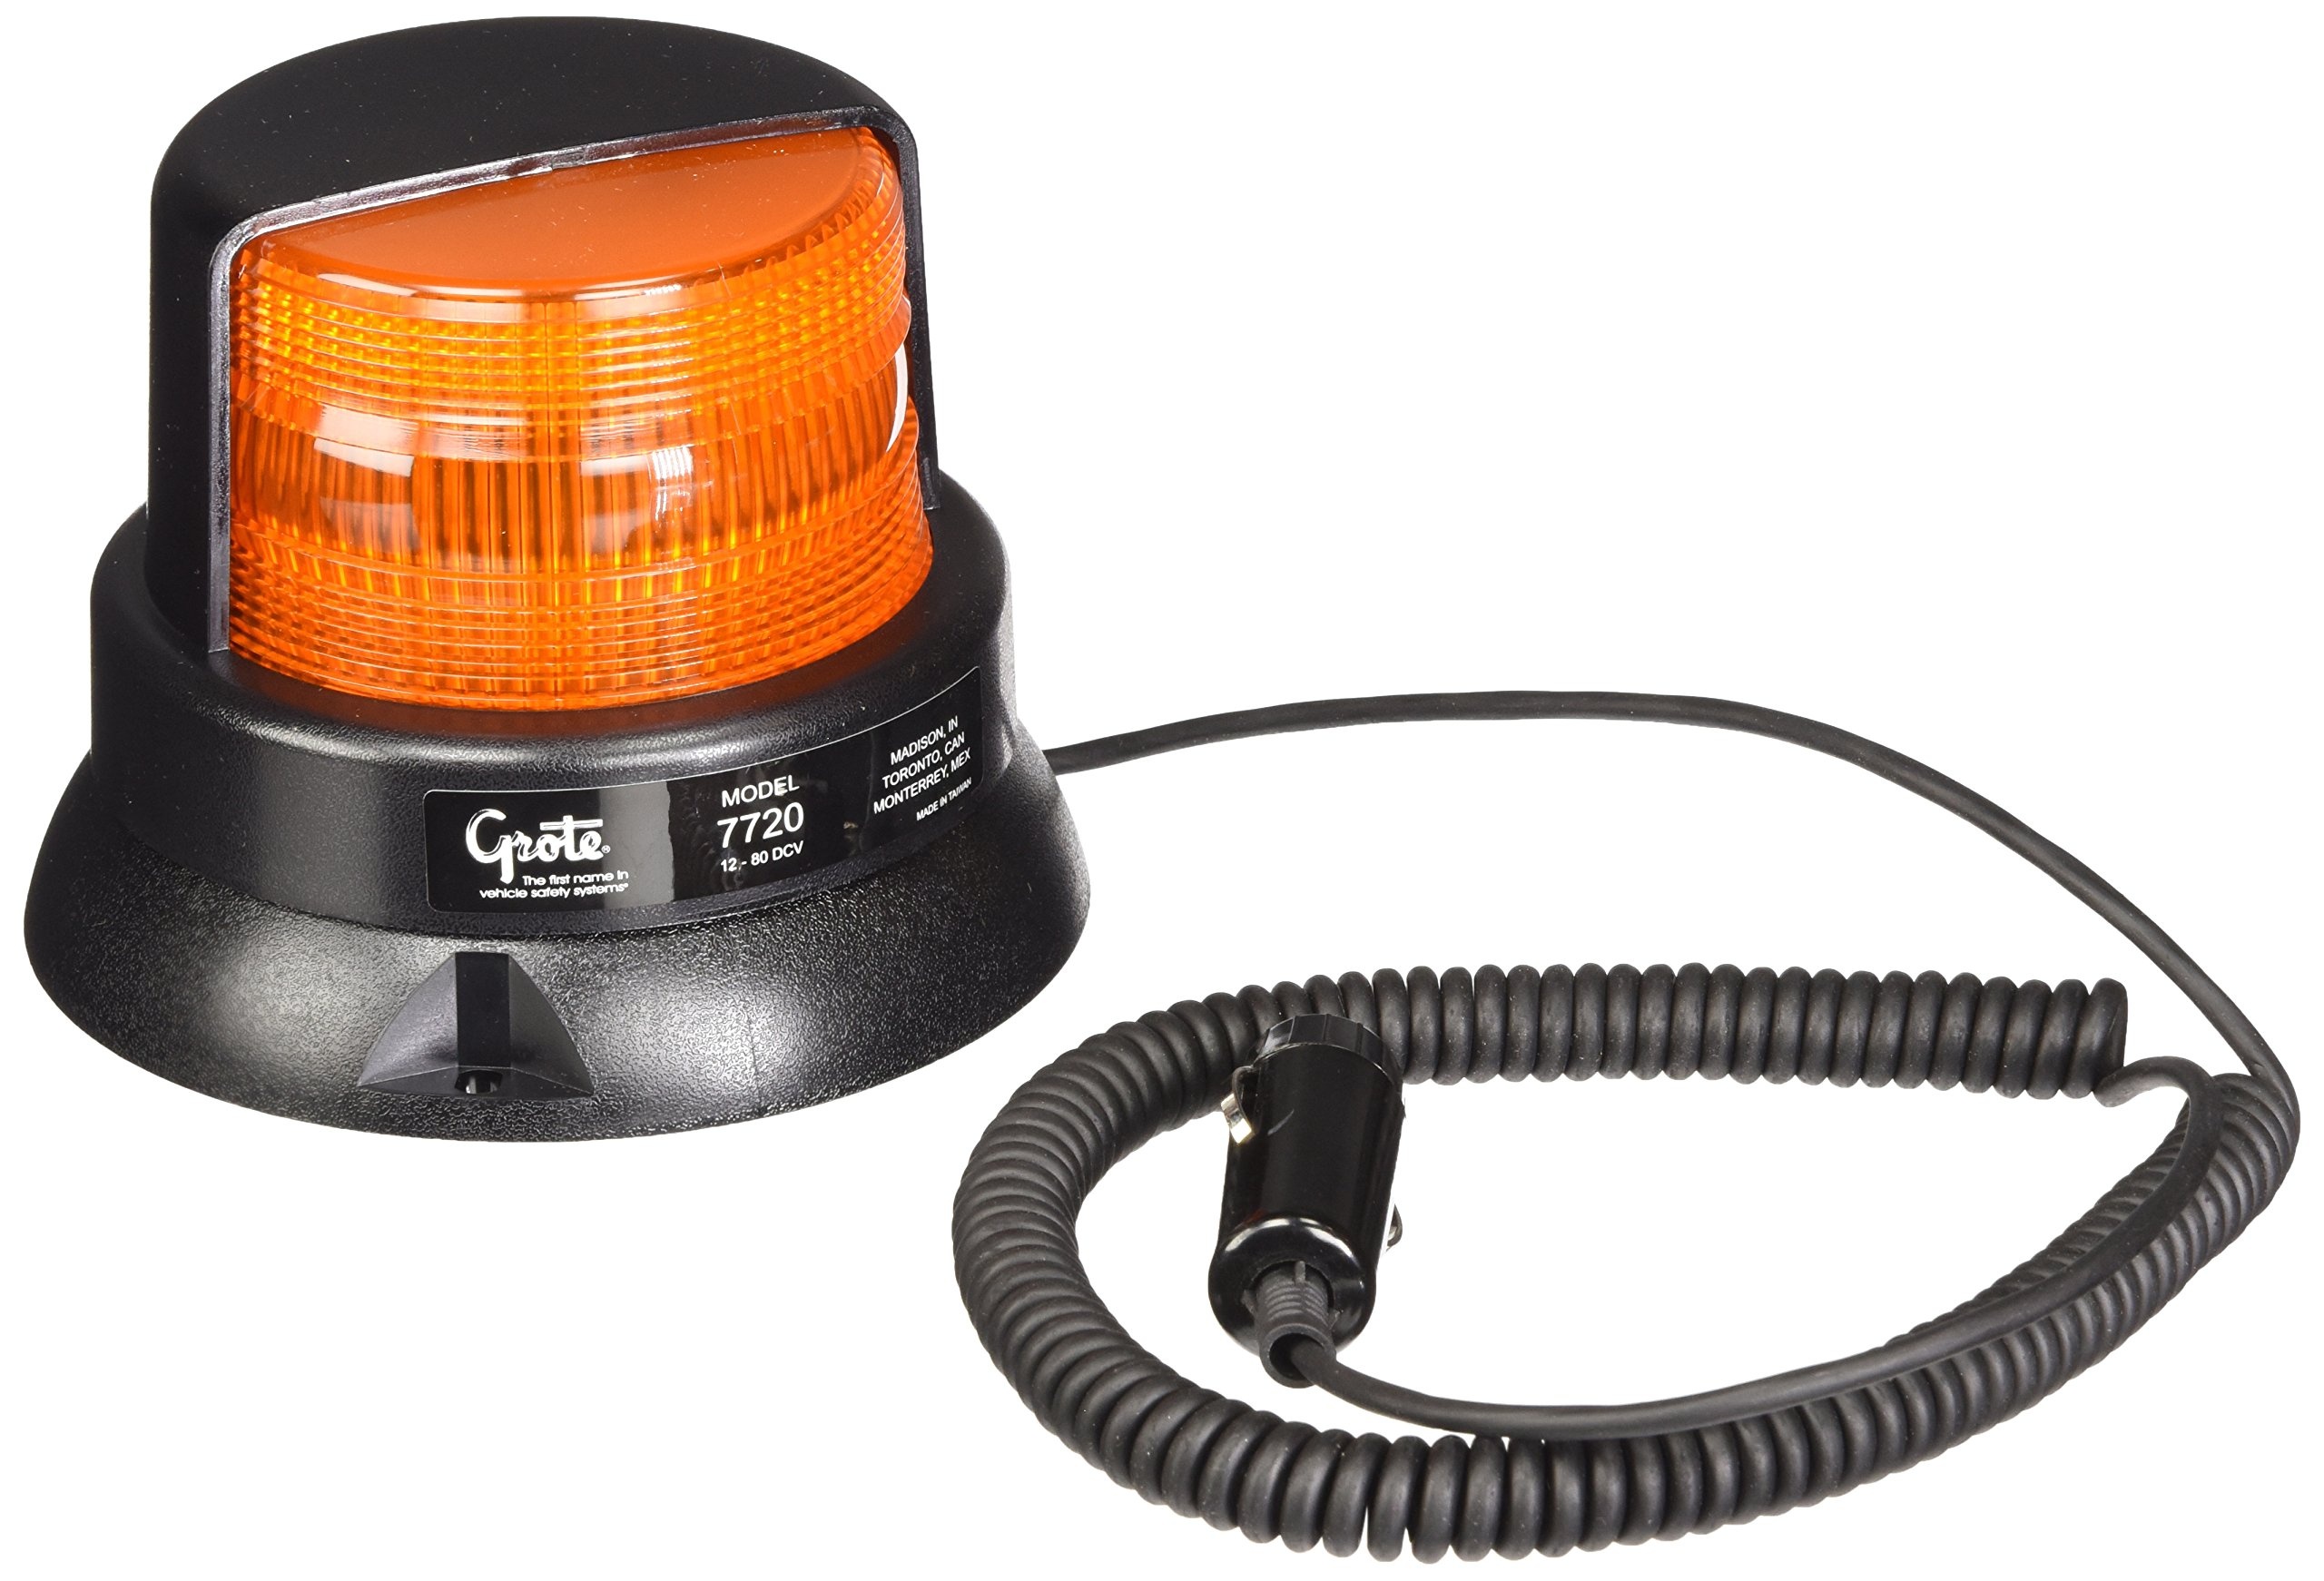 Grote 77203 Yellow Economy Material Handling Strobe